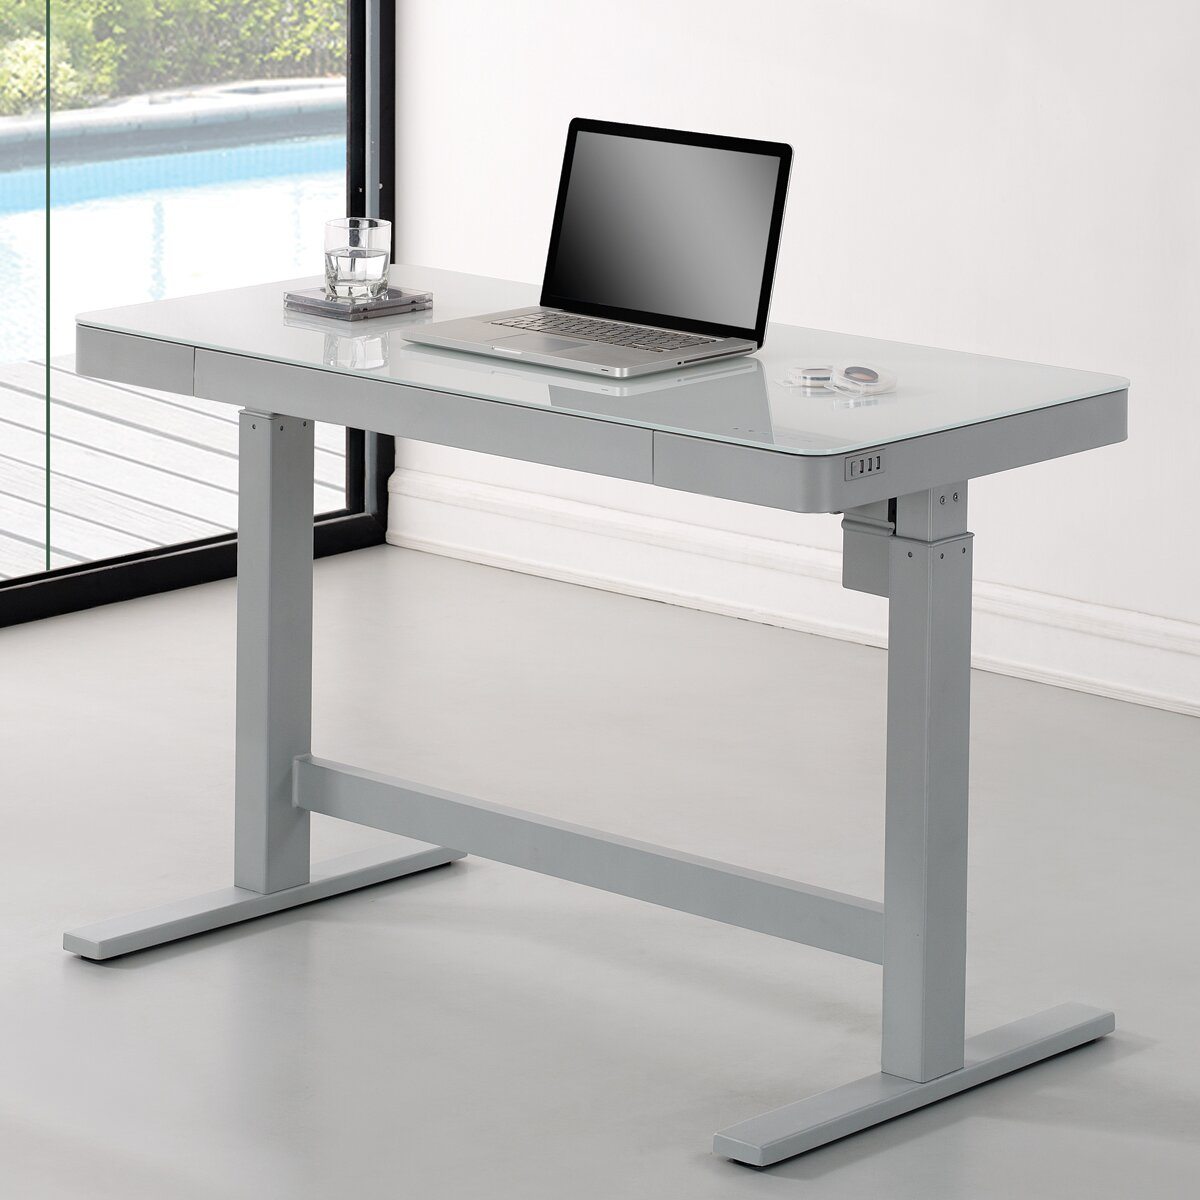 Wildon home adjustable standing desk reviews wayfair for Standing desk at home